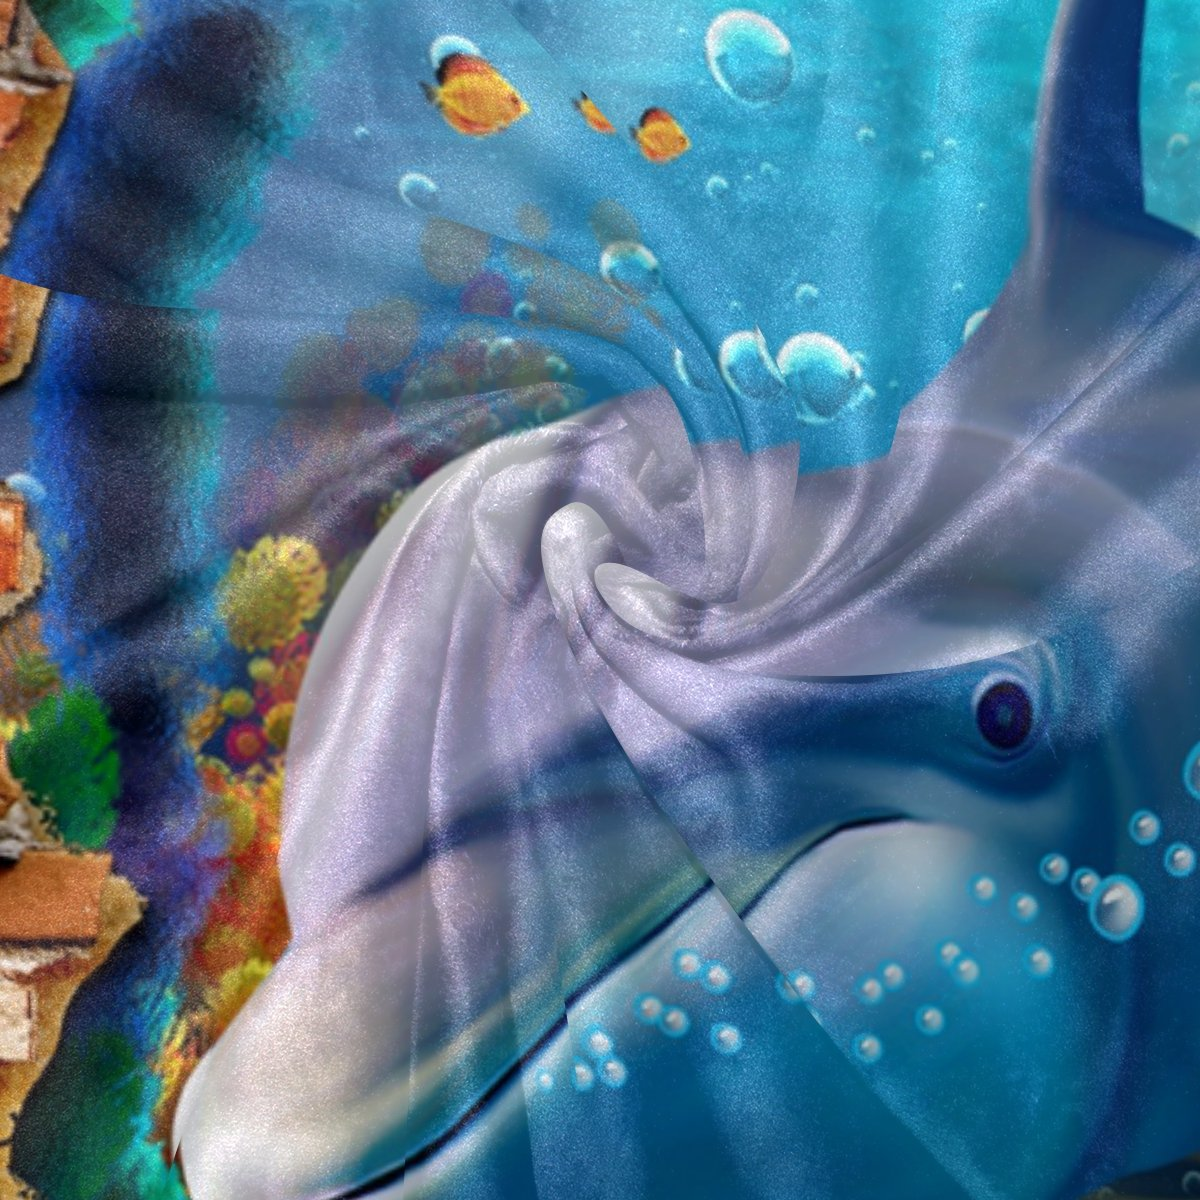 COOSUN Dolphin Sea Sea Sea Animals Super Soft Warm Blanket Lightweight Throw Blankets for Bed Couch Sofa Travelling Camping 90 x 60 Inch for Kids Boys Girls B0789CNQ7Z Kopfkissenbezüge f24383